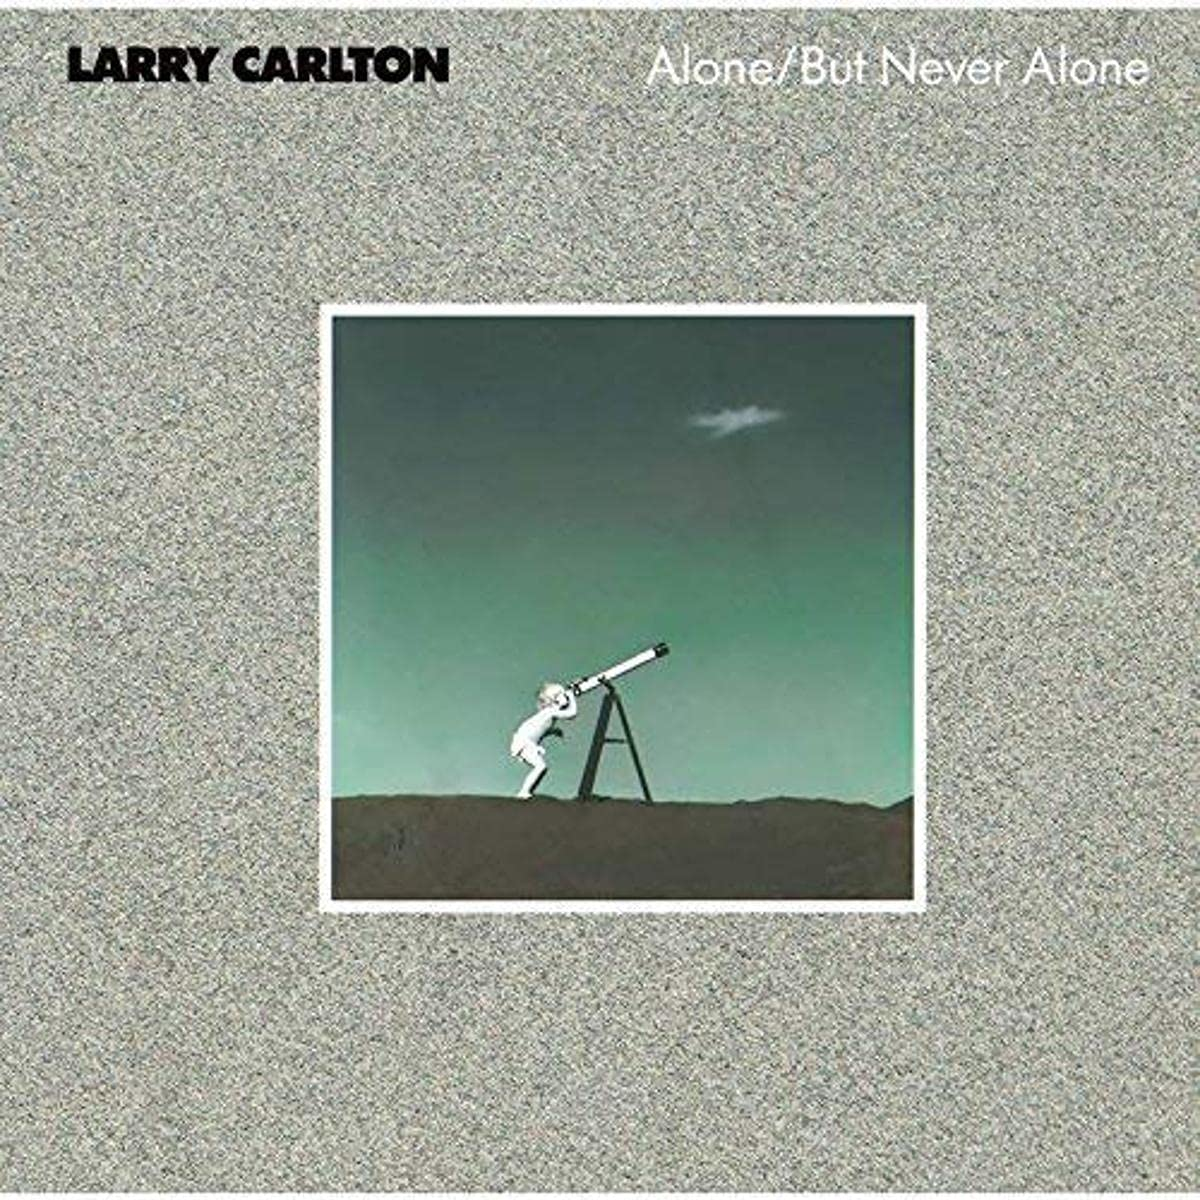 Larry Carlton - Alone But Never Alone (1986) [FLAC] Download